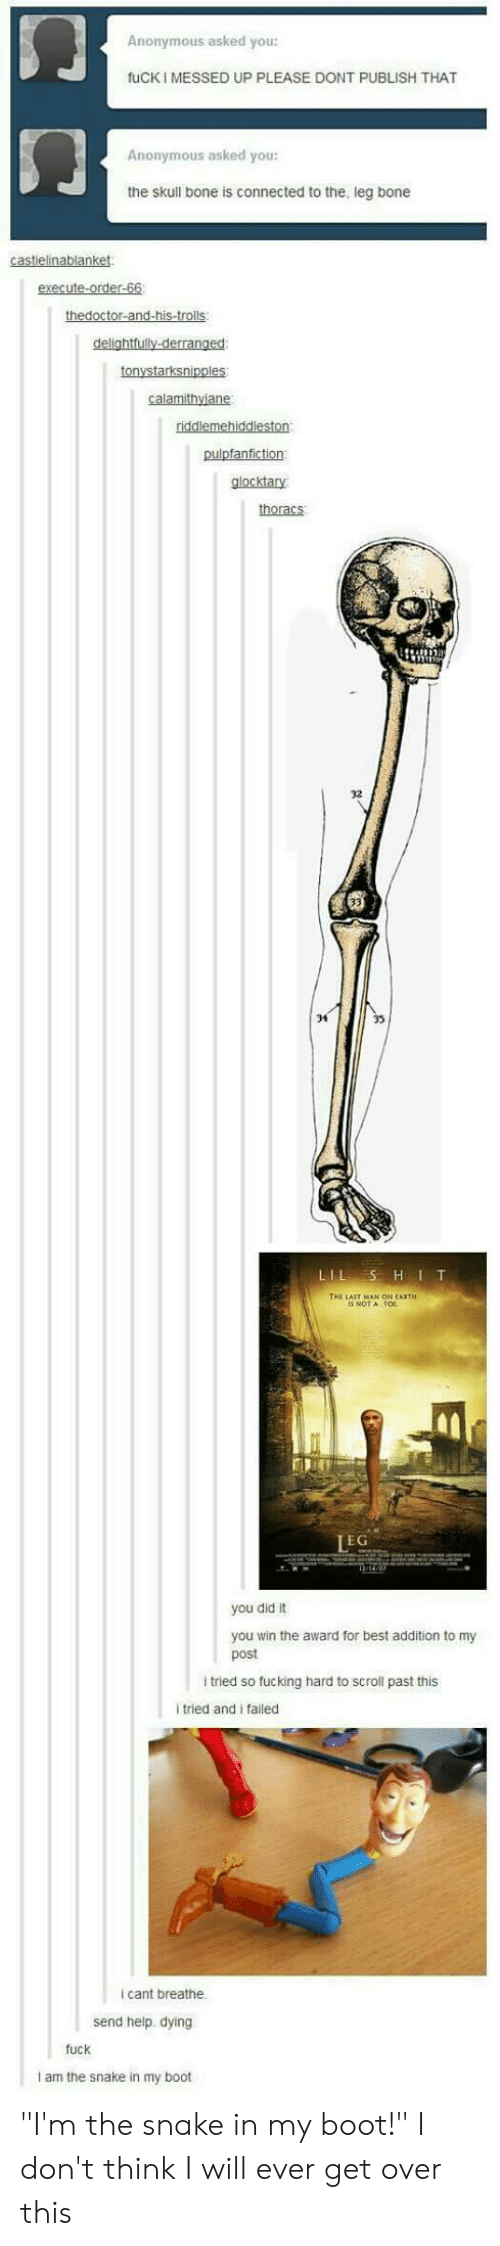 "Fucking, Anonymous, and Best: SJ  ㄇ  Anonymous asked you:  UP PLEASE DONT  fuCKI MESSED  PUBLISH THAT  Anonymous asked you:  the skull bone  is connected to the  , leg bone  pulpfanfiction  glocktary  thoracs  32  34  THE LAIT MAN ON EARTH  NOT A  TOL  IEG  you did it  you win the award for best addition to my  post  l tried so fucking hard to scroll past this  i tried and i failed  i cant breathe  send help. dying  fuck  I am the snake in my boot ""I'm the snake in my boot!"" I don't think I will ever get over this"